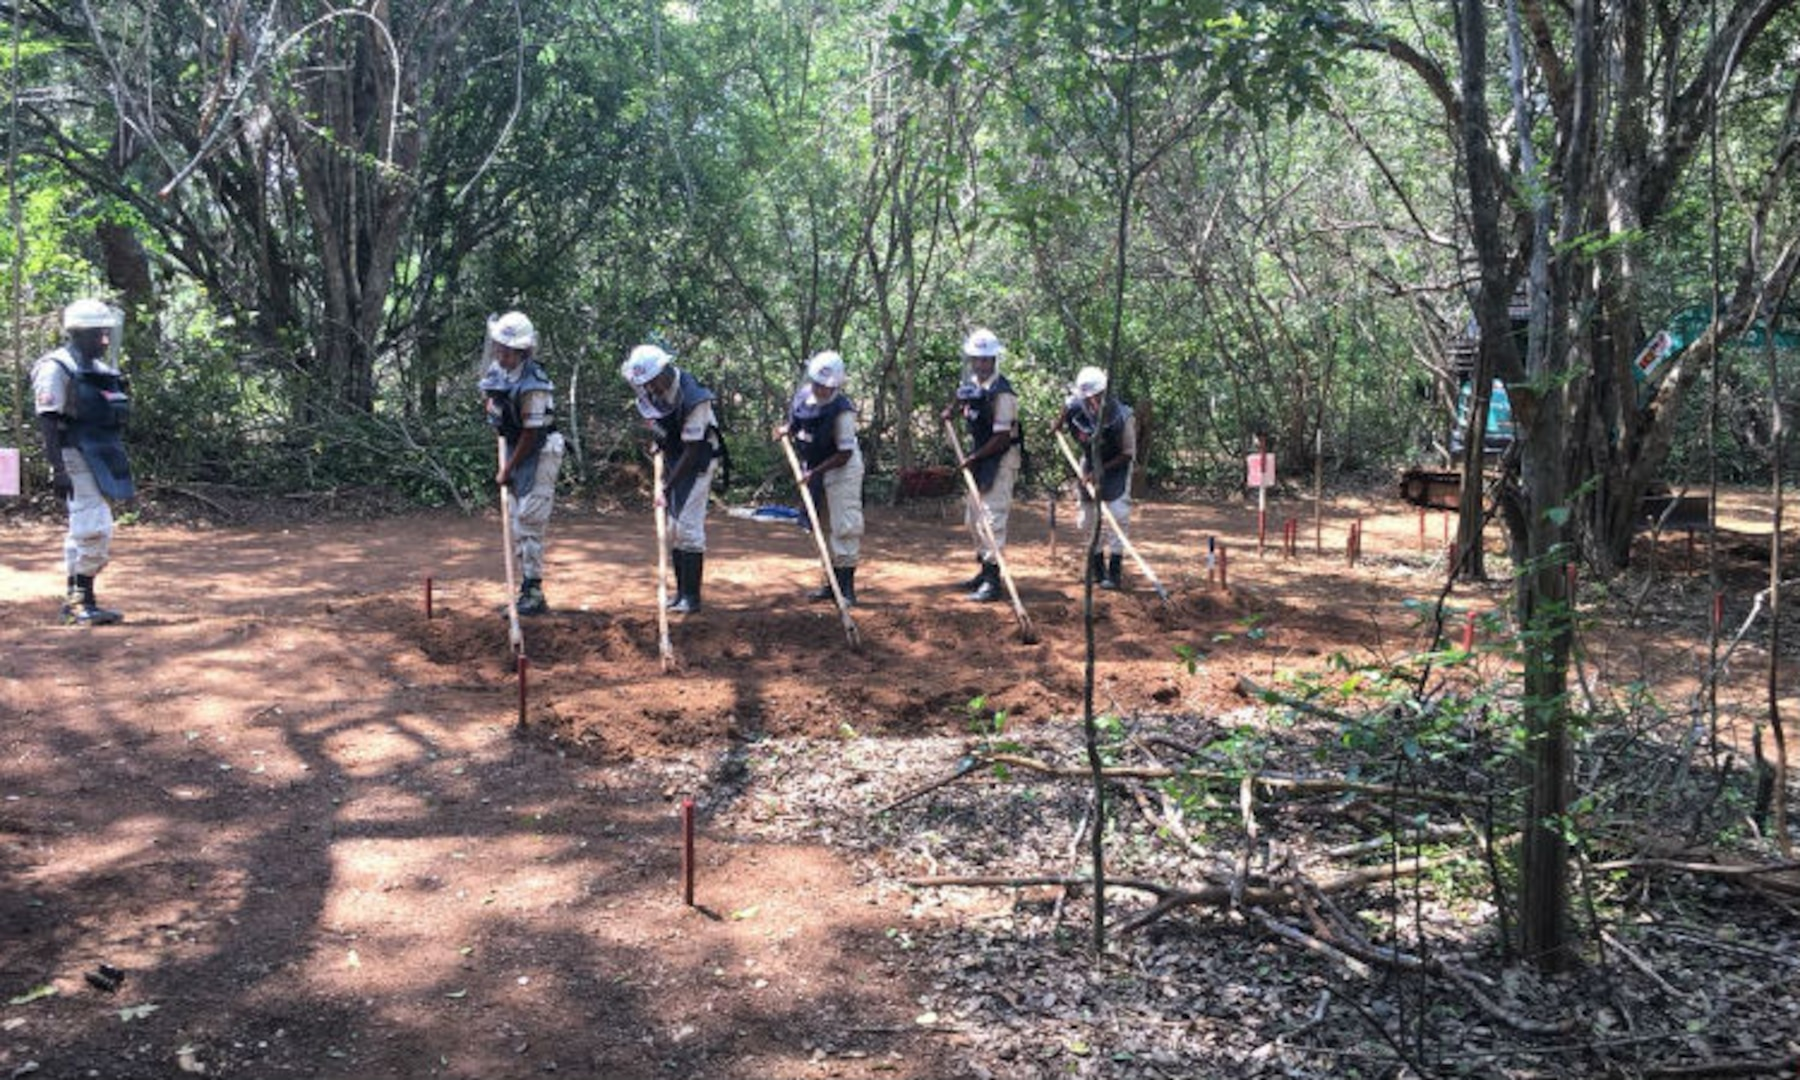 U.S. Department of State Provides 600 Million Sri Lankan Rupees for Mine Clearance